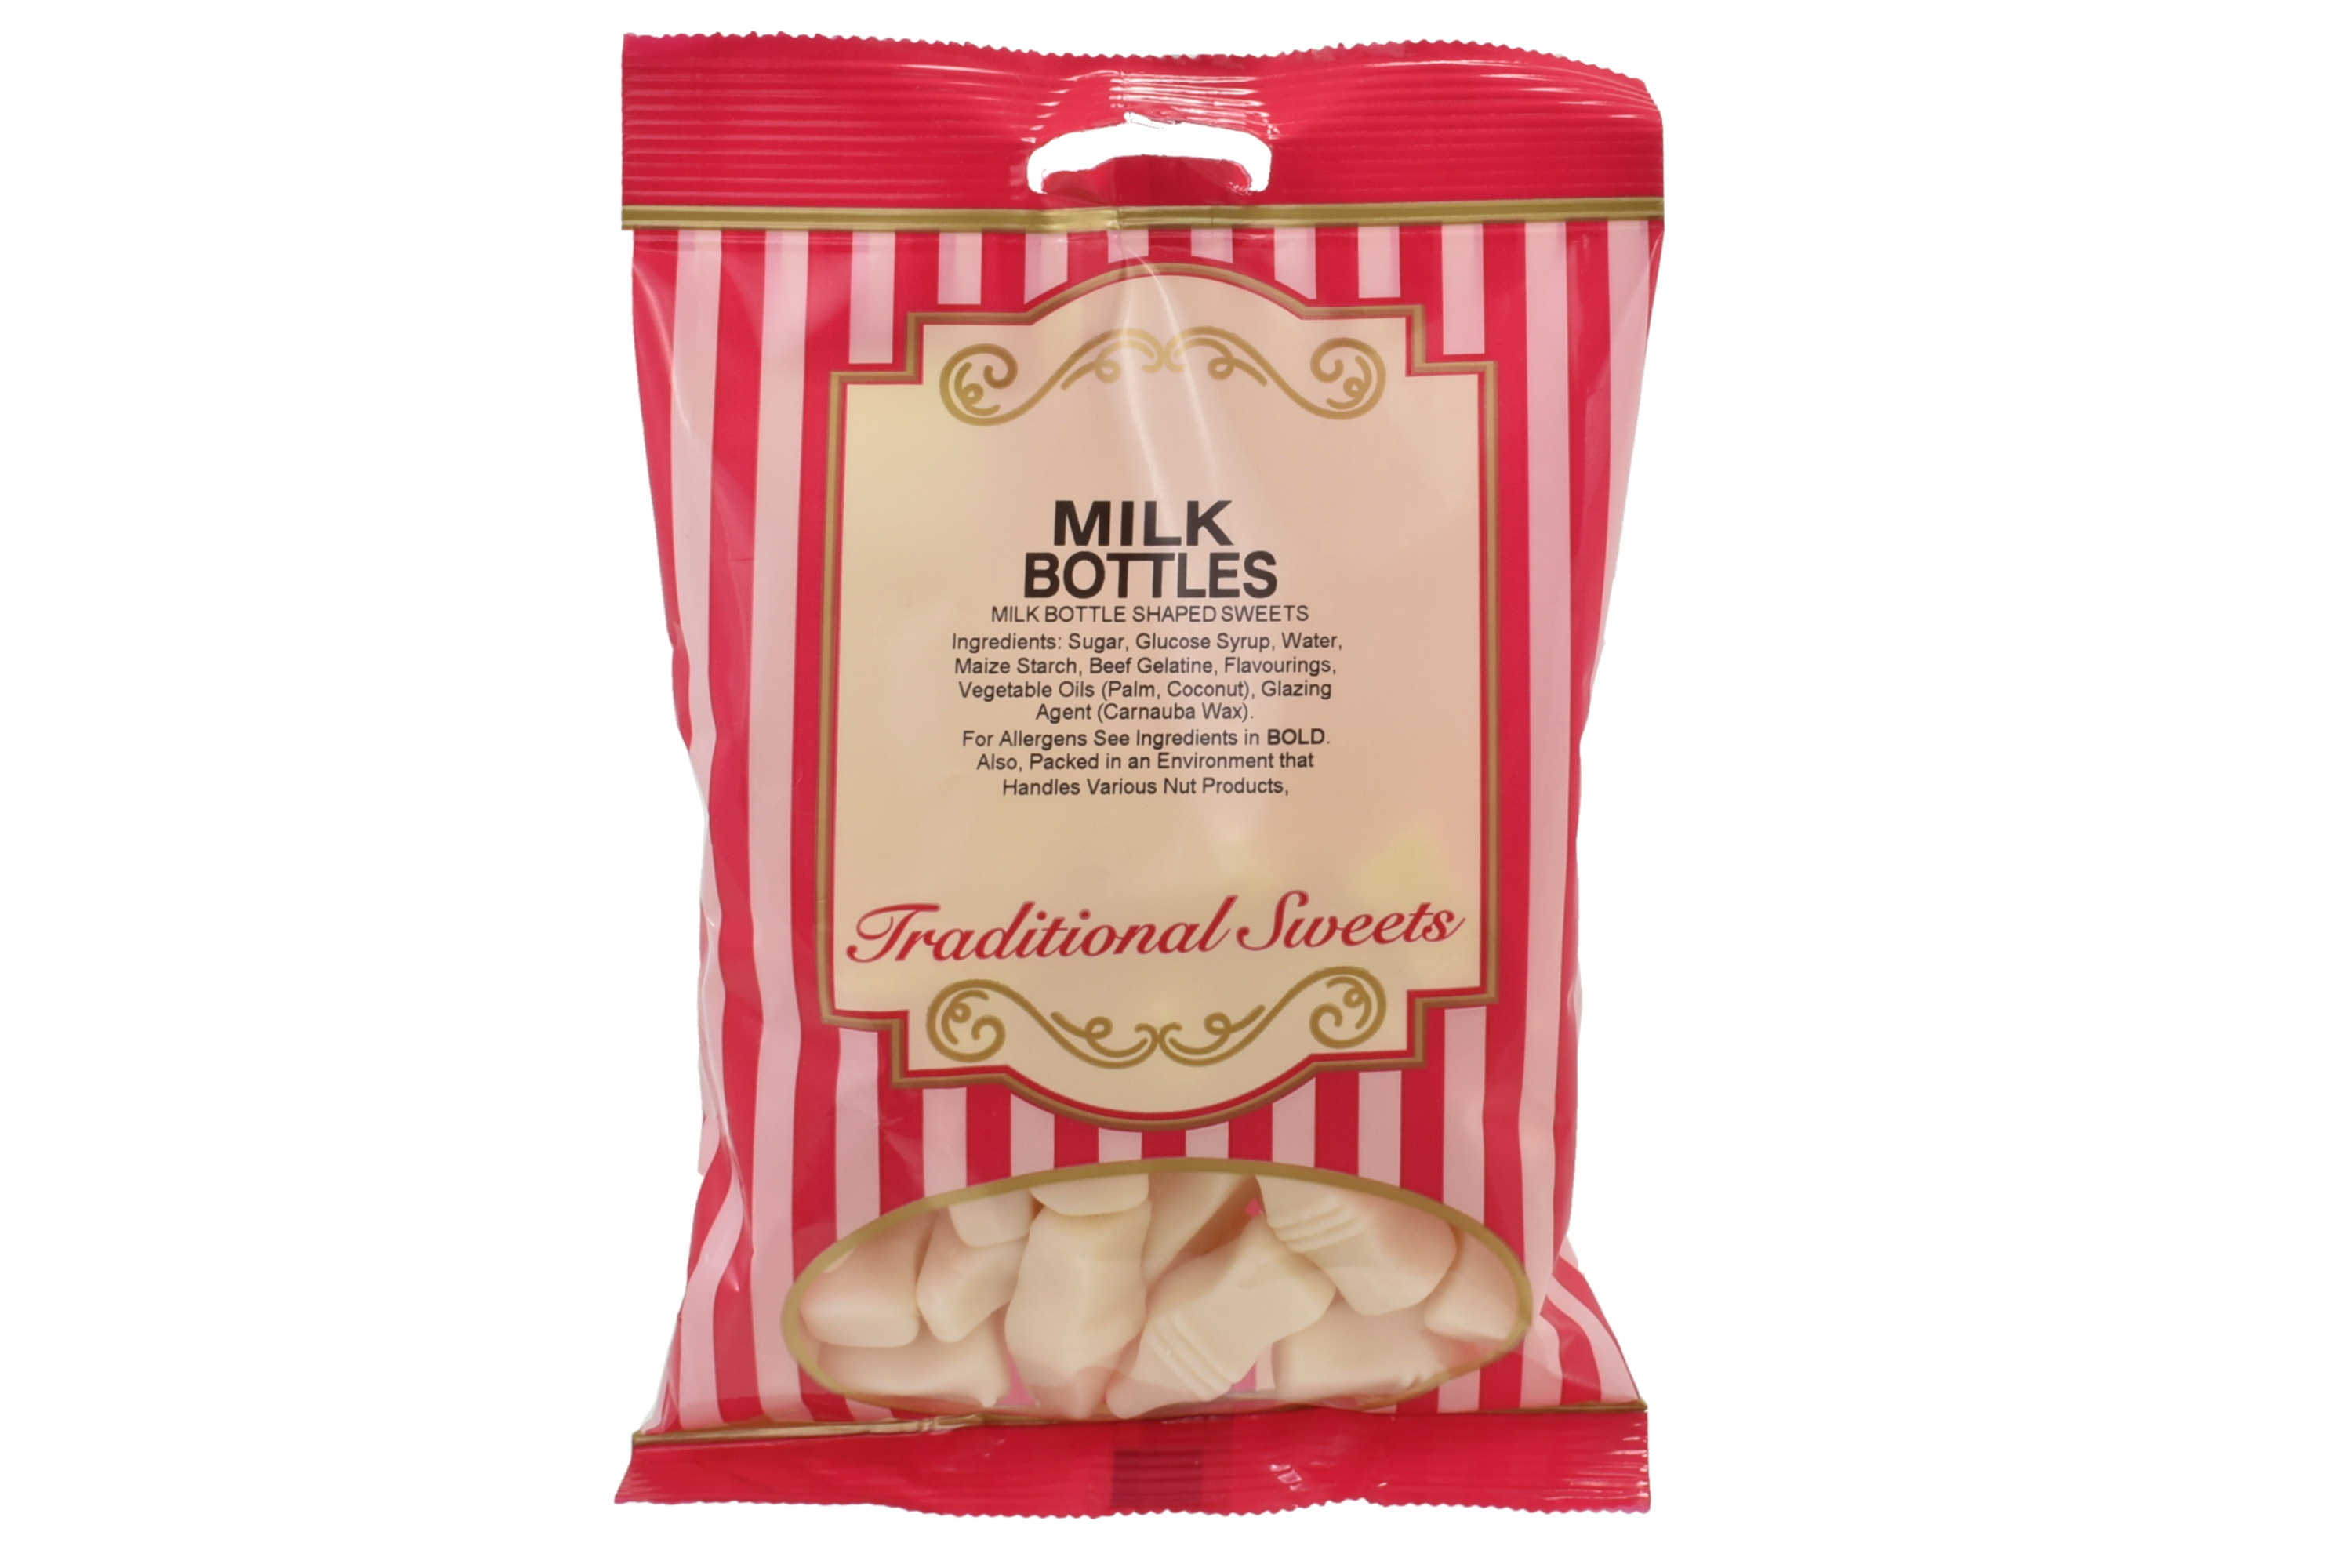 150g Milk Bottles - Prepack